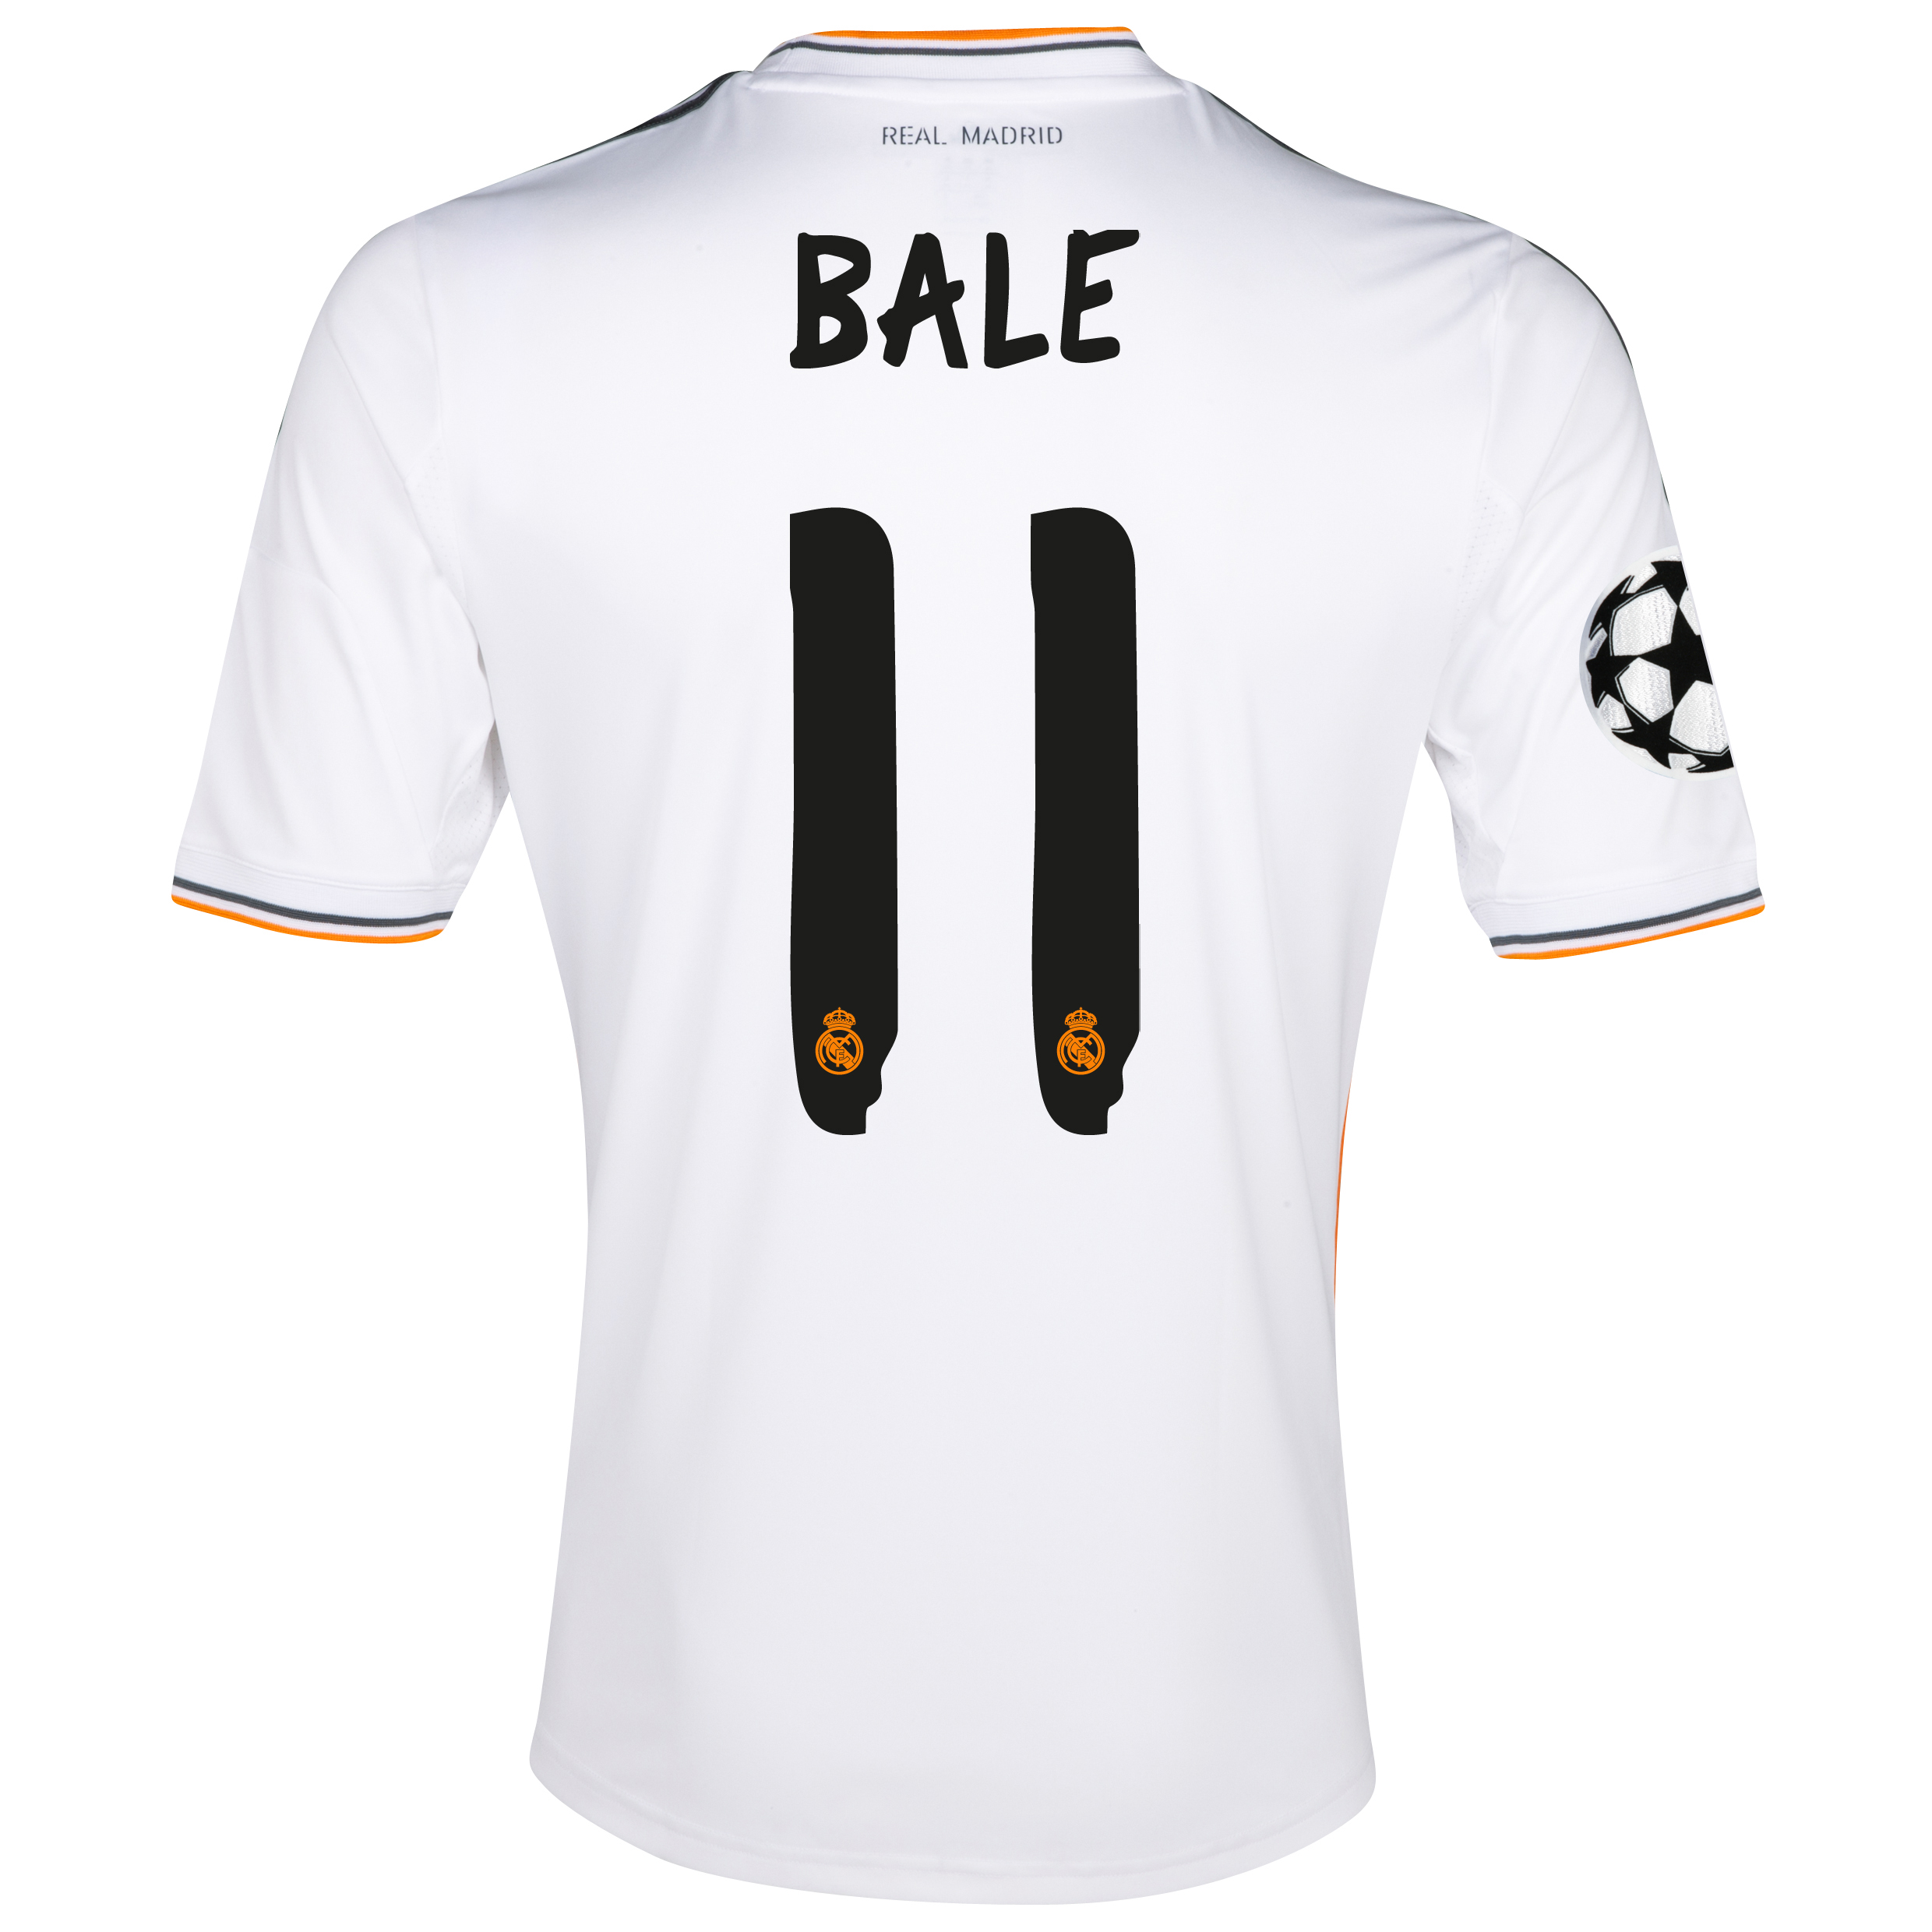 Real Madrid UEFA Champions League Home Shirt 2013/14 - kids with Bale 11 printing